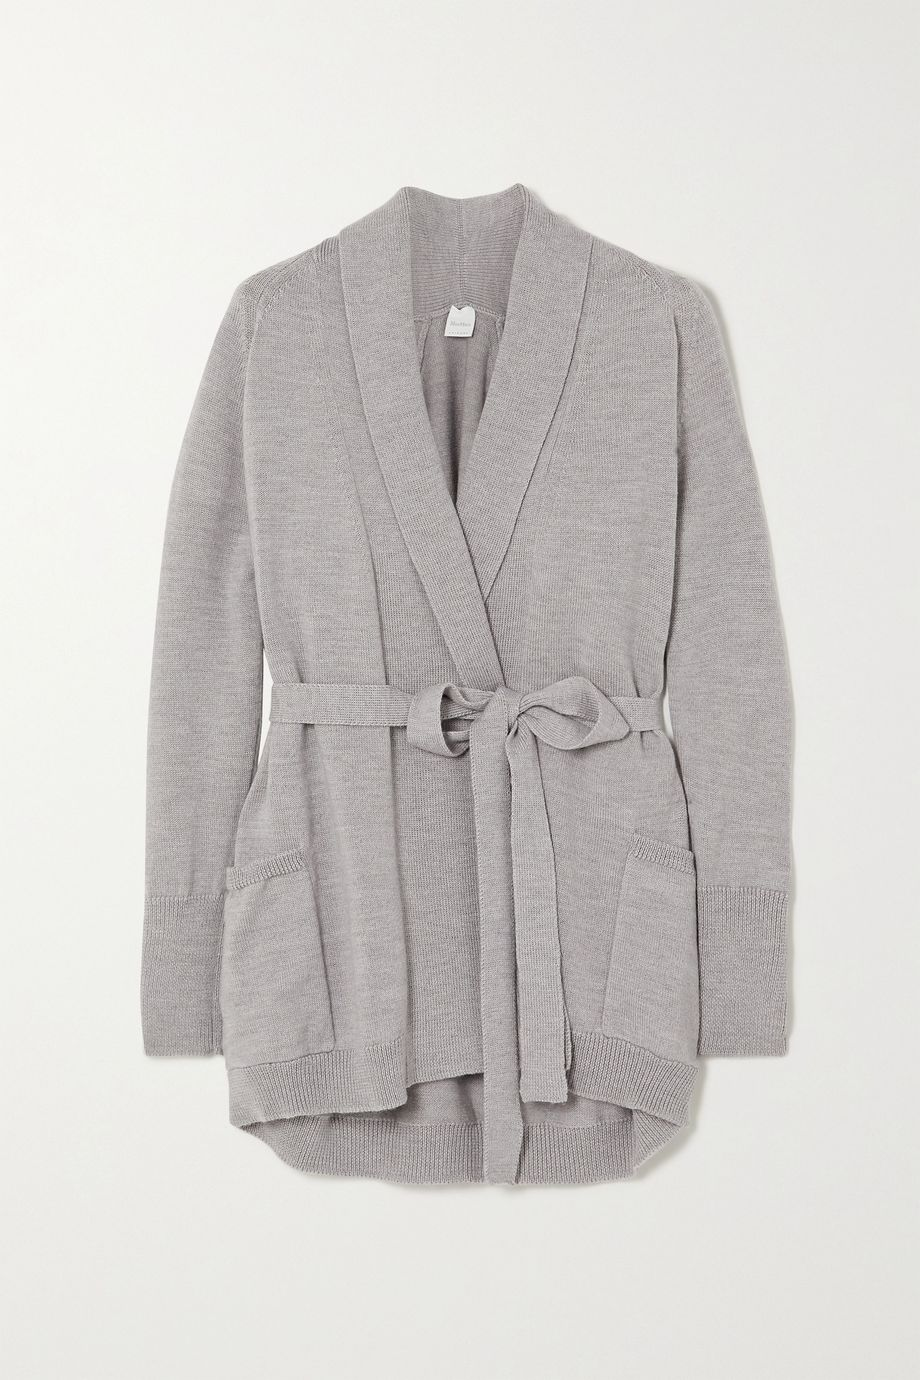 Max Mara Leisure belted wool cardigan